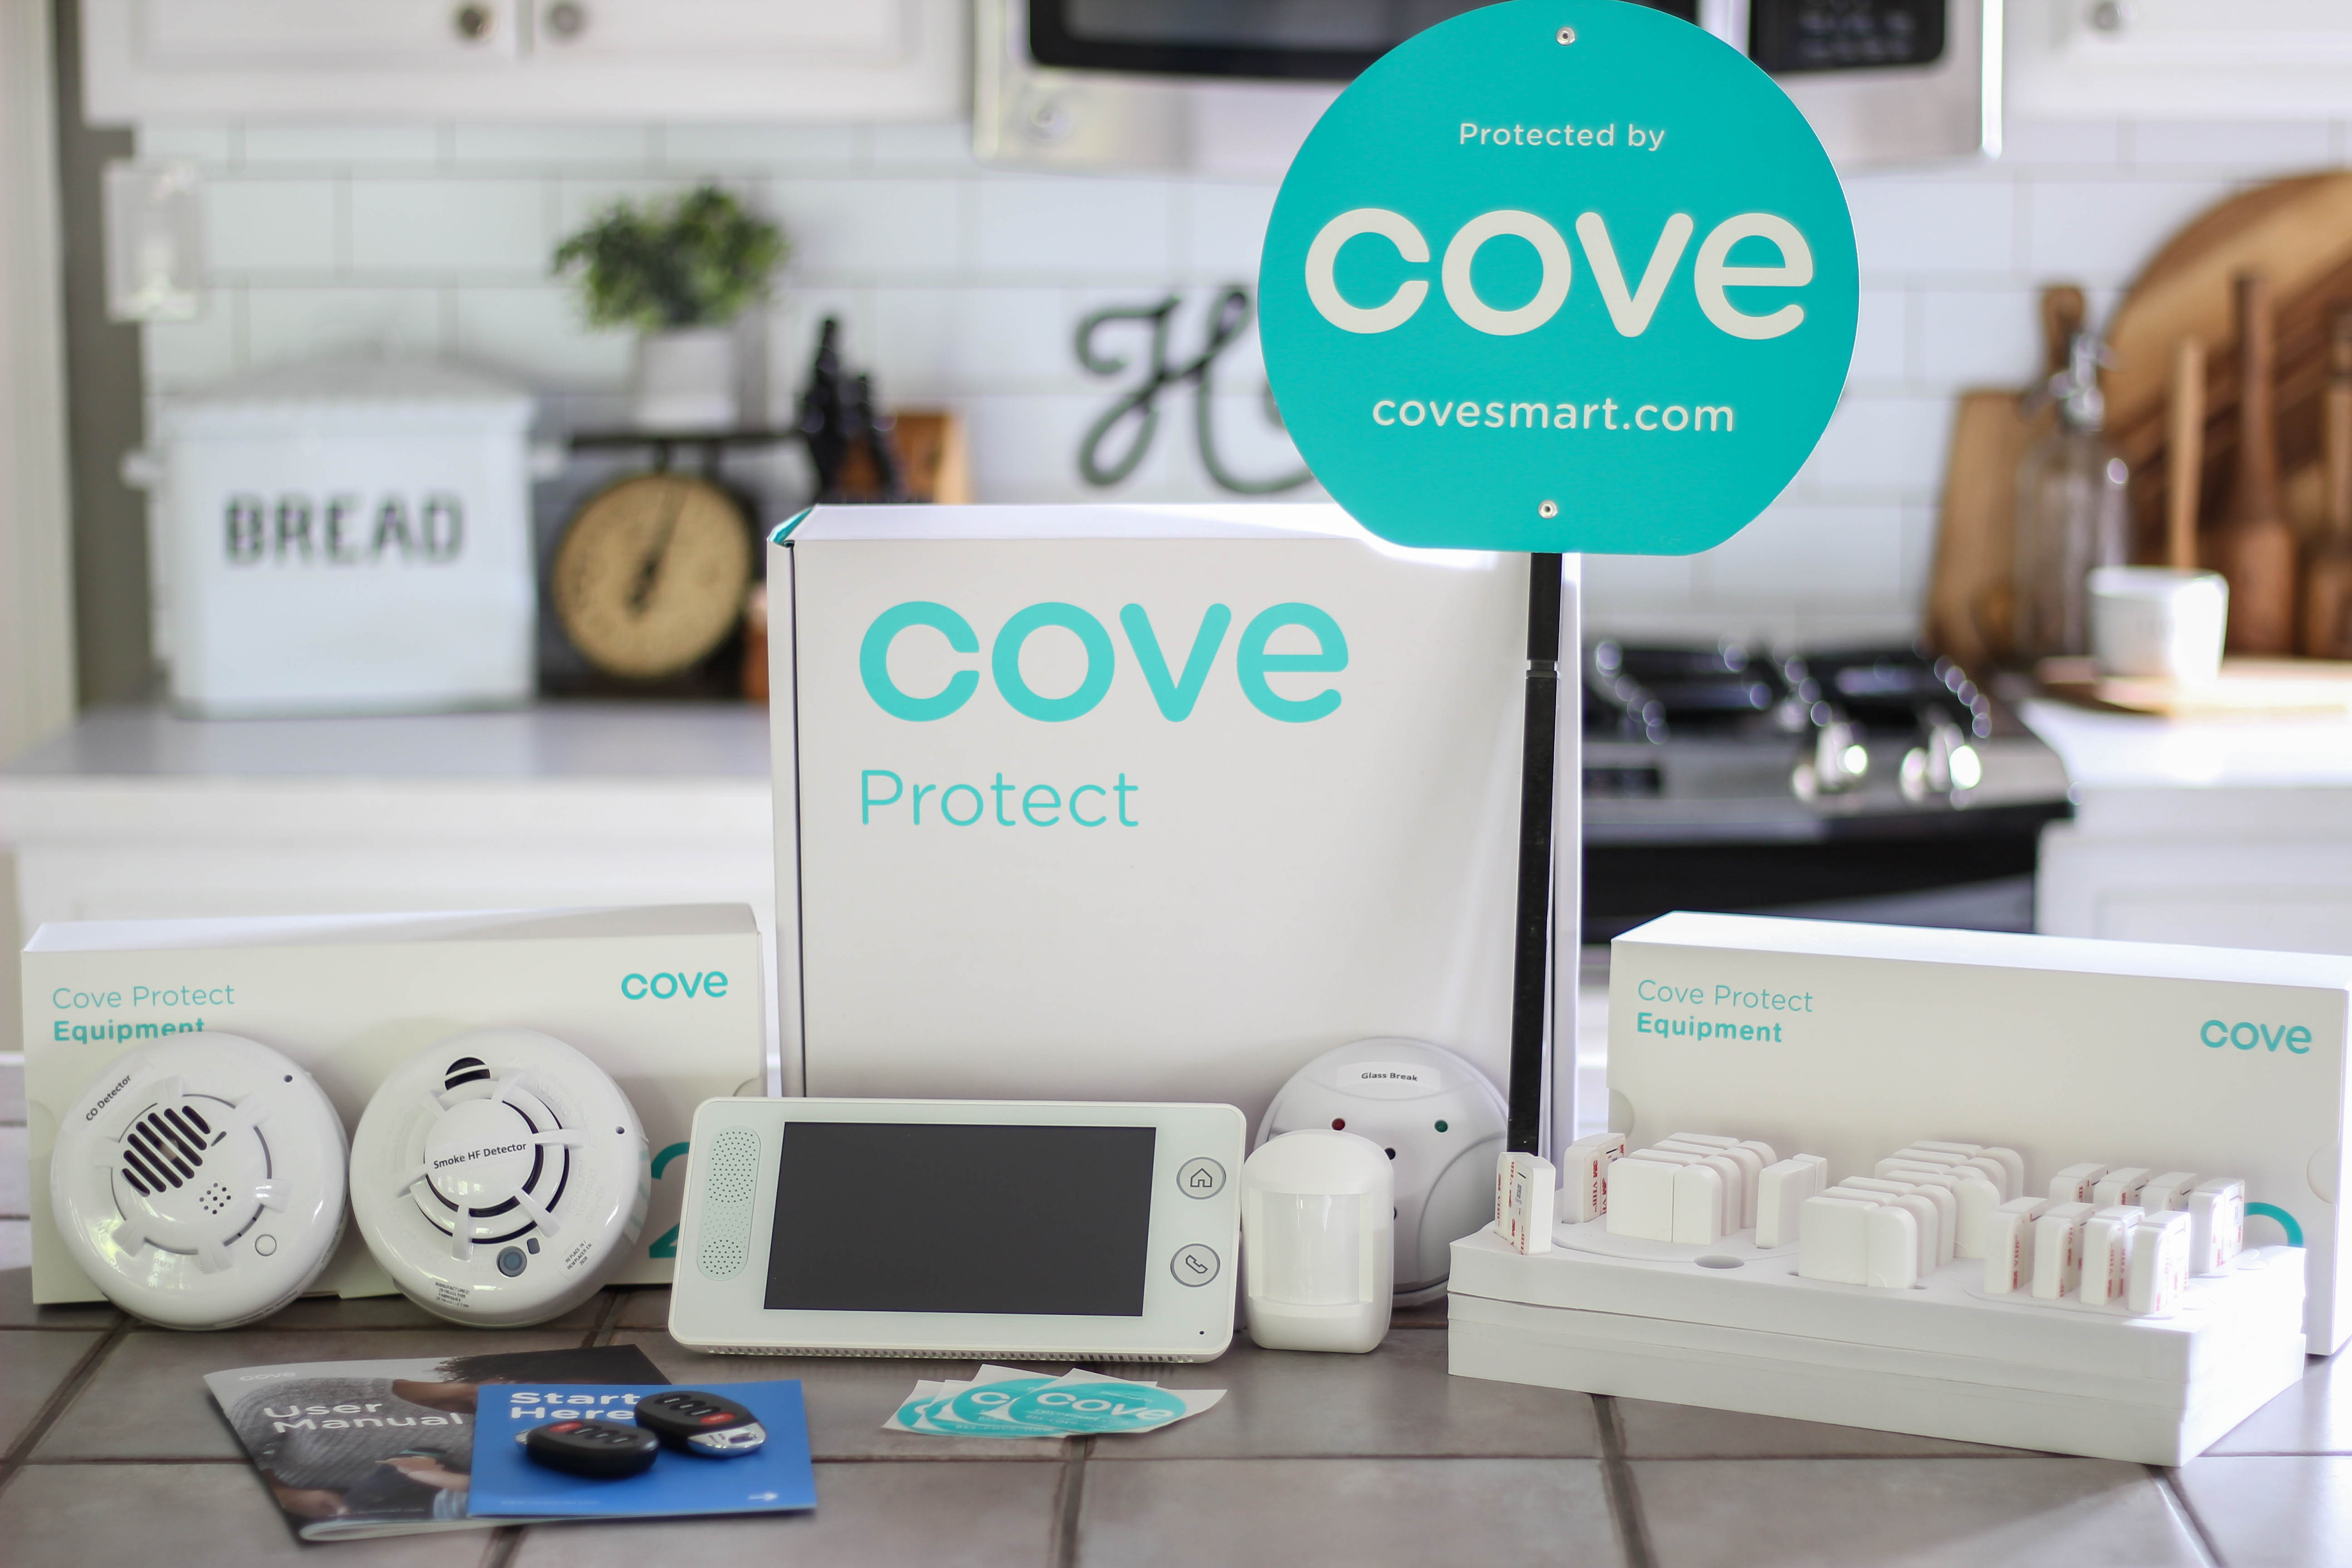 This DIY wireless home security system from Cove was so easy to install! In less than an hour, we set up a system to keep our family safe and protected.